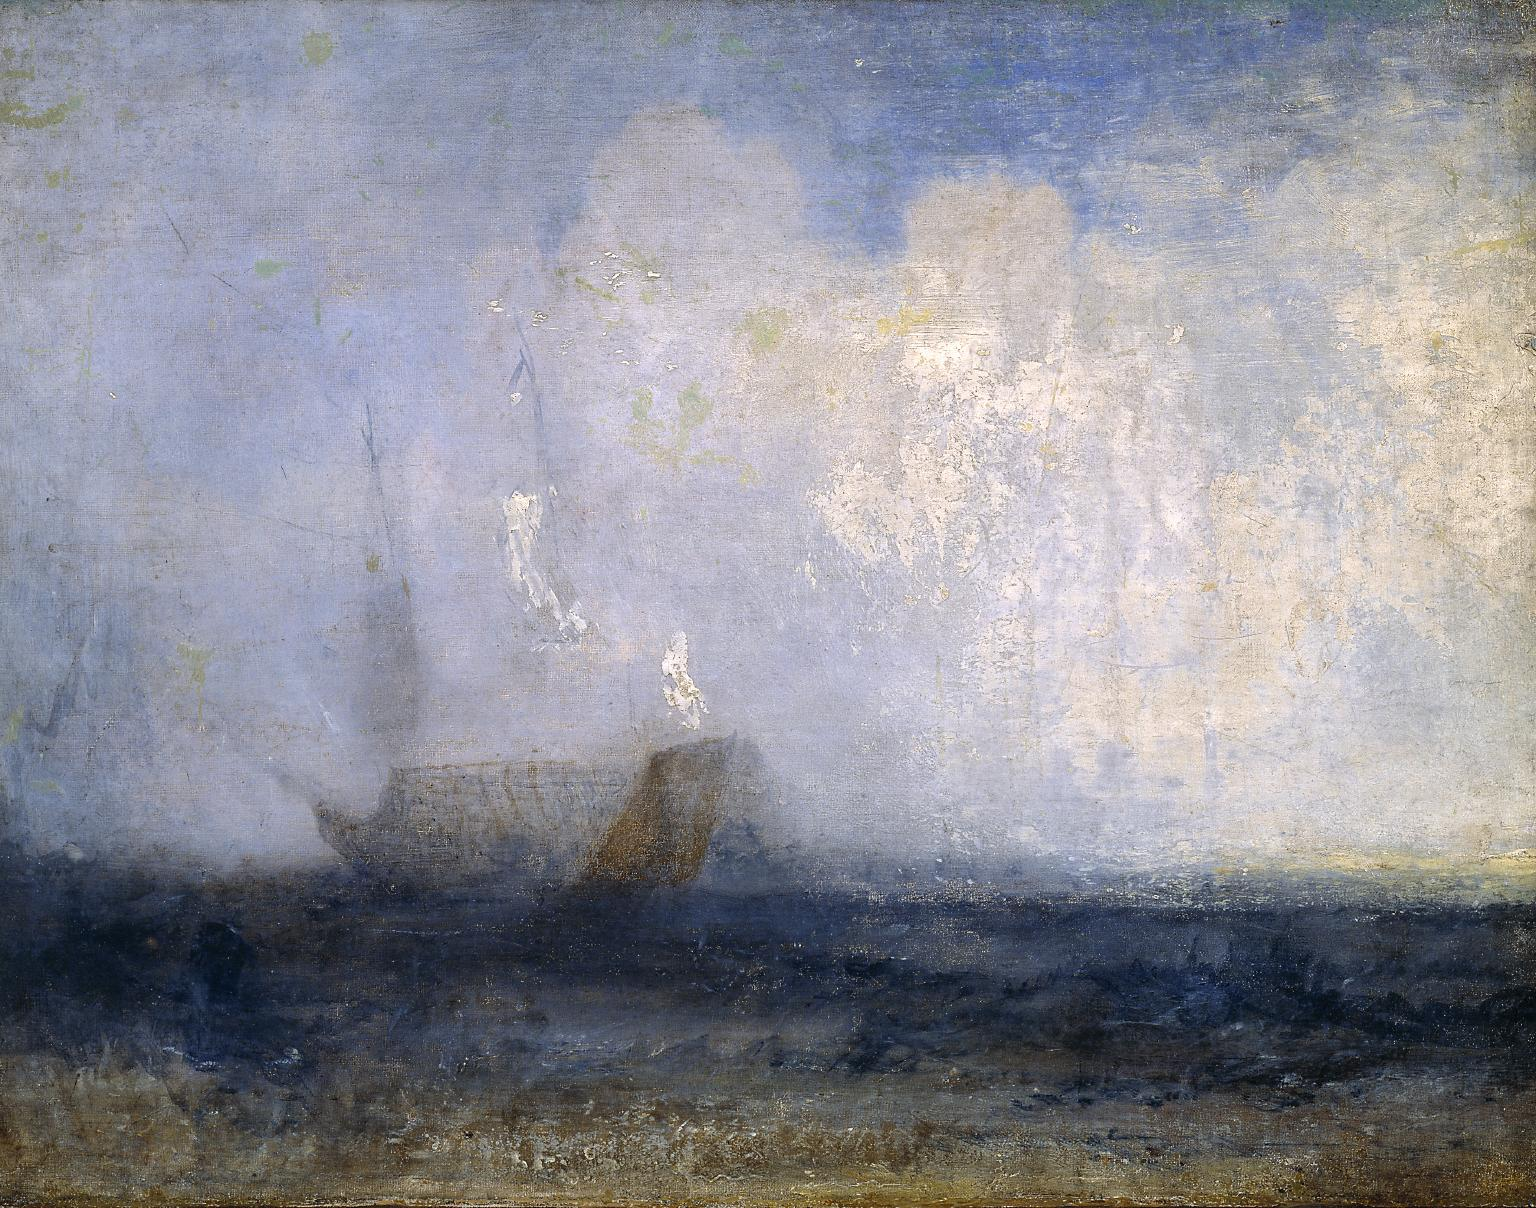 J. M. W. Turner, Seascape with a Sailing Boat and a Ship, c.1825–30. Oil on canvas, 46.7 × 61 cm. The Tate Gallery, London.jpg